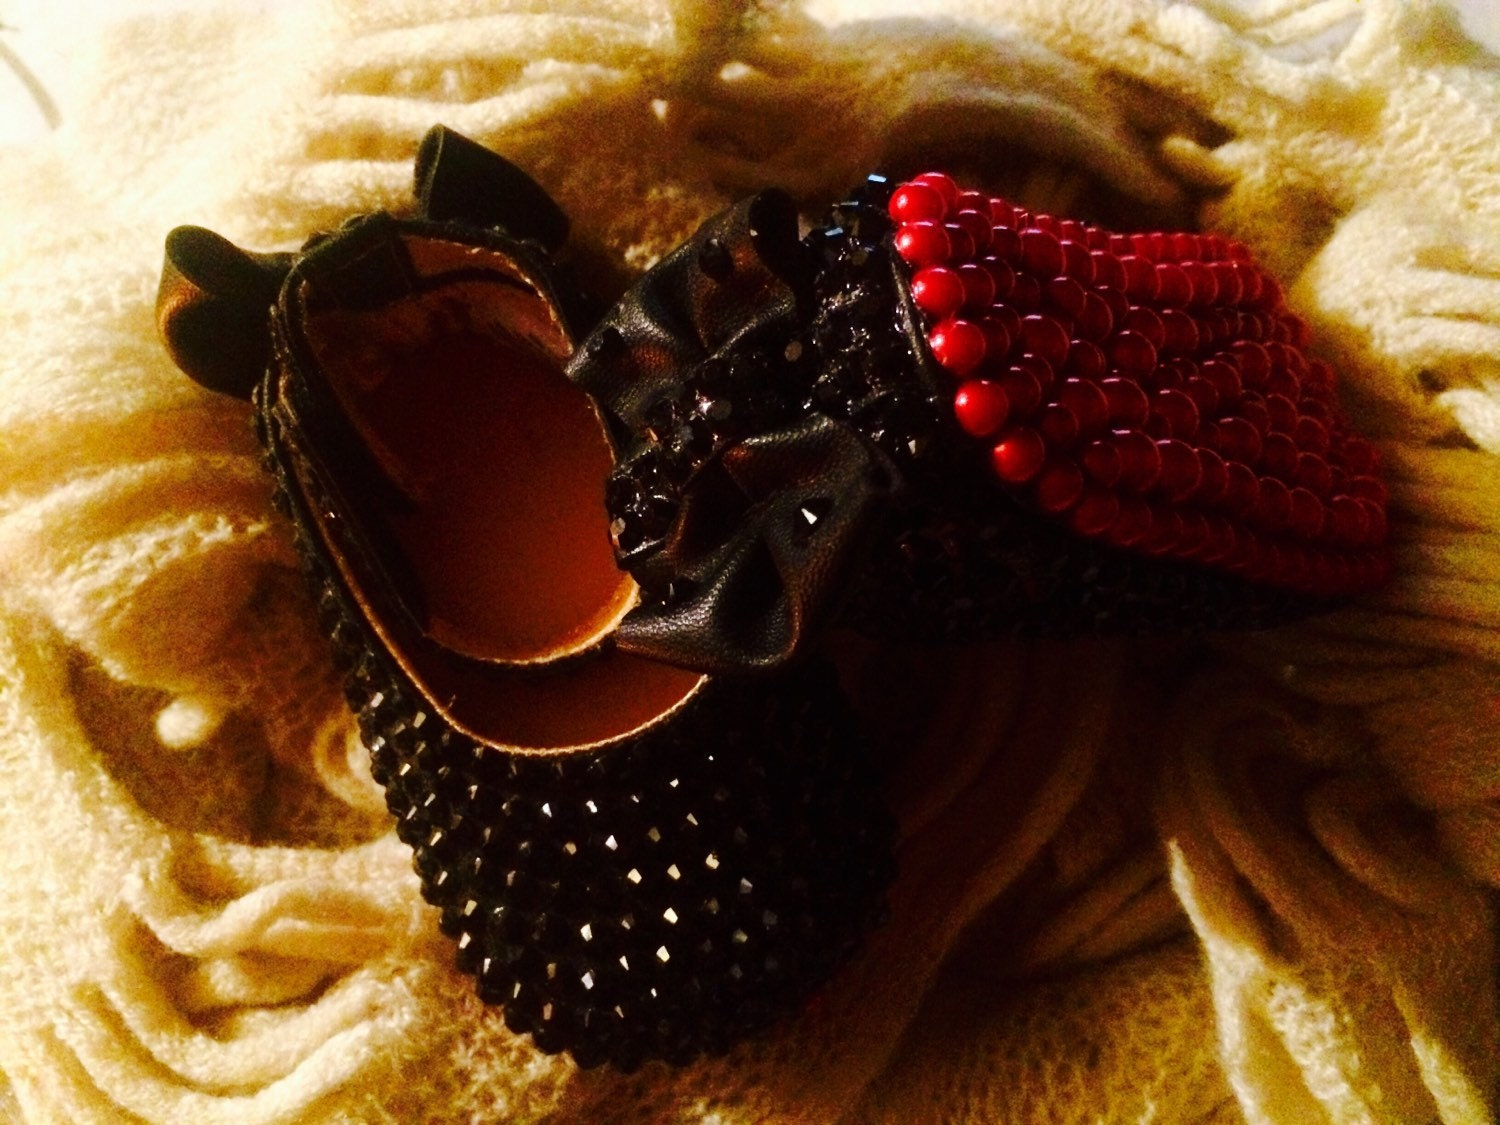 christian louboutin inspired baby shoes Buy Authentic